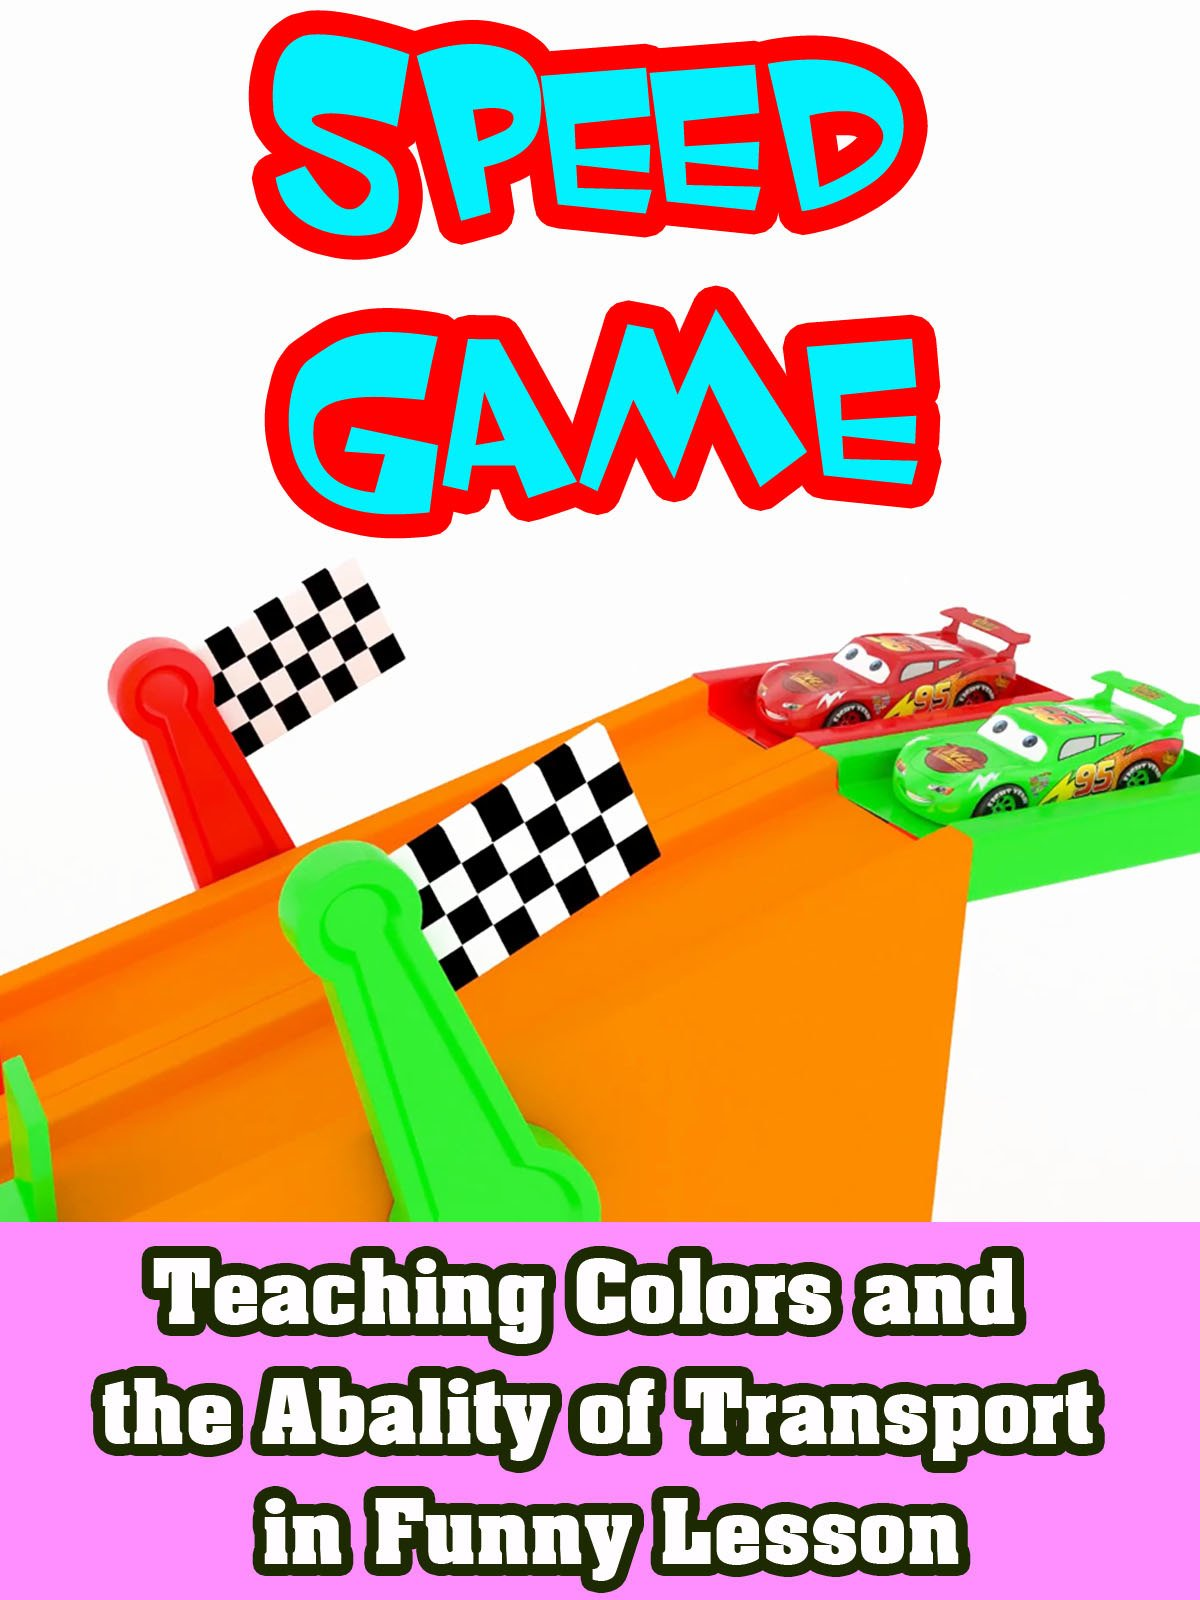 Teaching Colors and the Abality of Transport in Funny Lesson